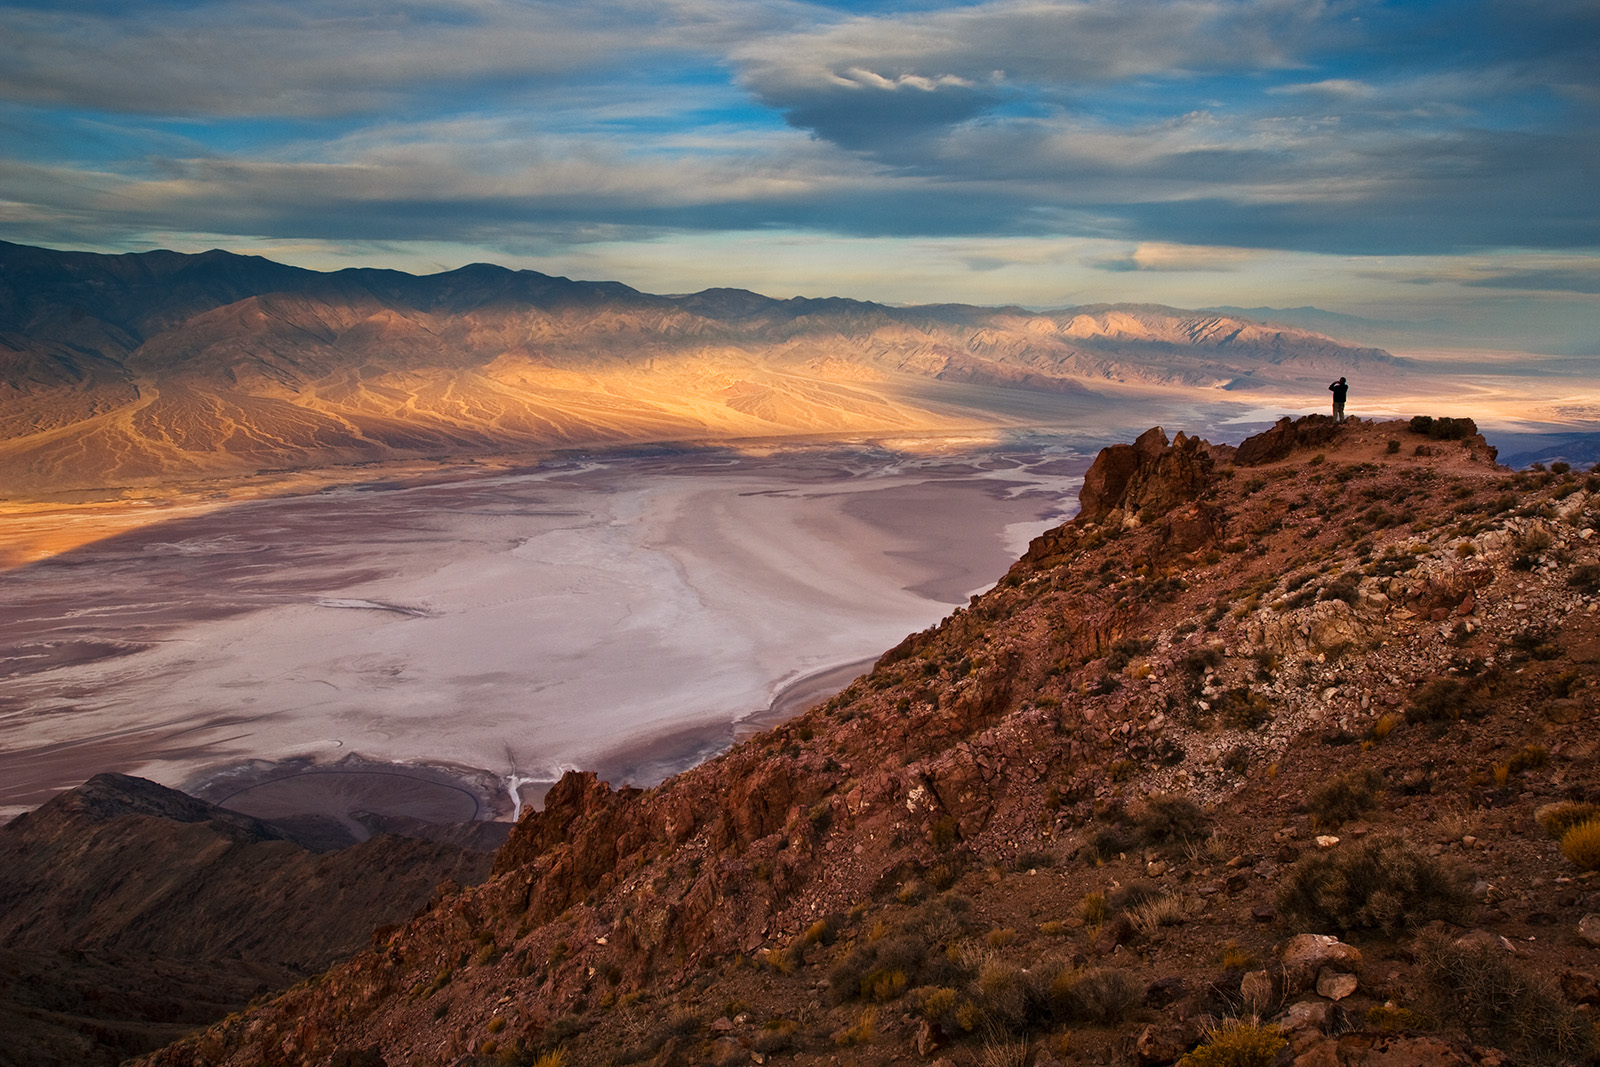 A0910, above, adult, adults, America, American, Badwater, Badwater Basin, Basin, beautiful, beauty, California, Climate, cloud, clouds, cloudy sky, Color, colorful, Colour, Crystallization, Cunrise, D, photo